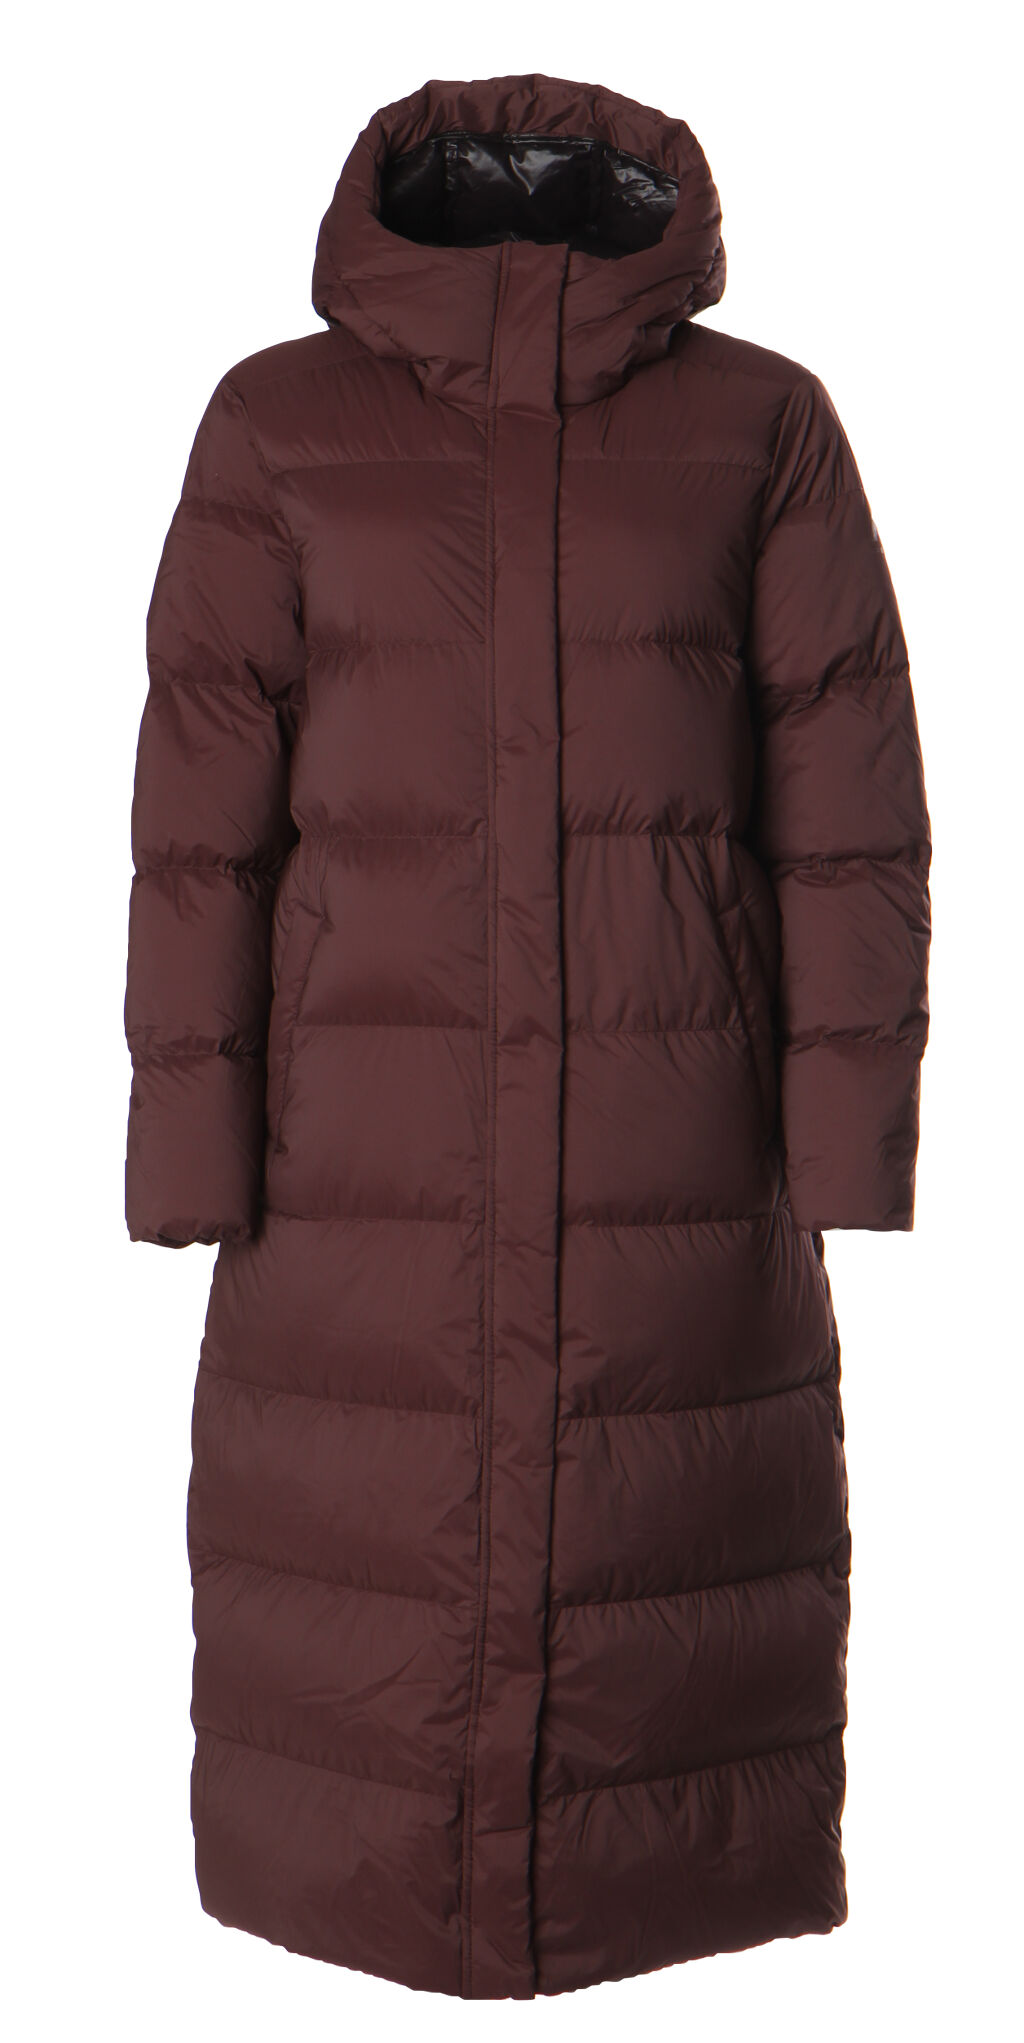 McKINLEY Sire Down Jacket W